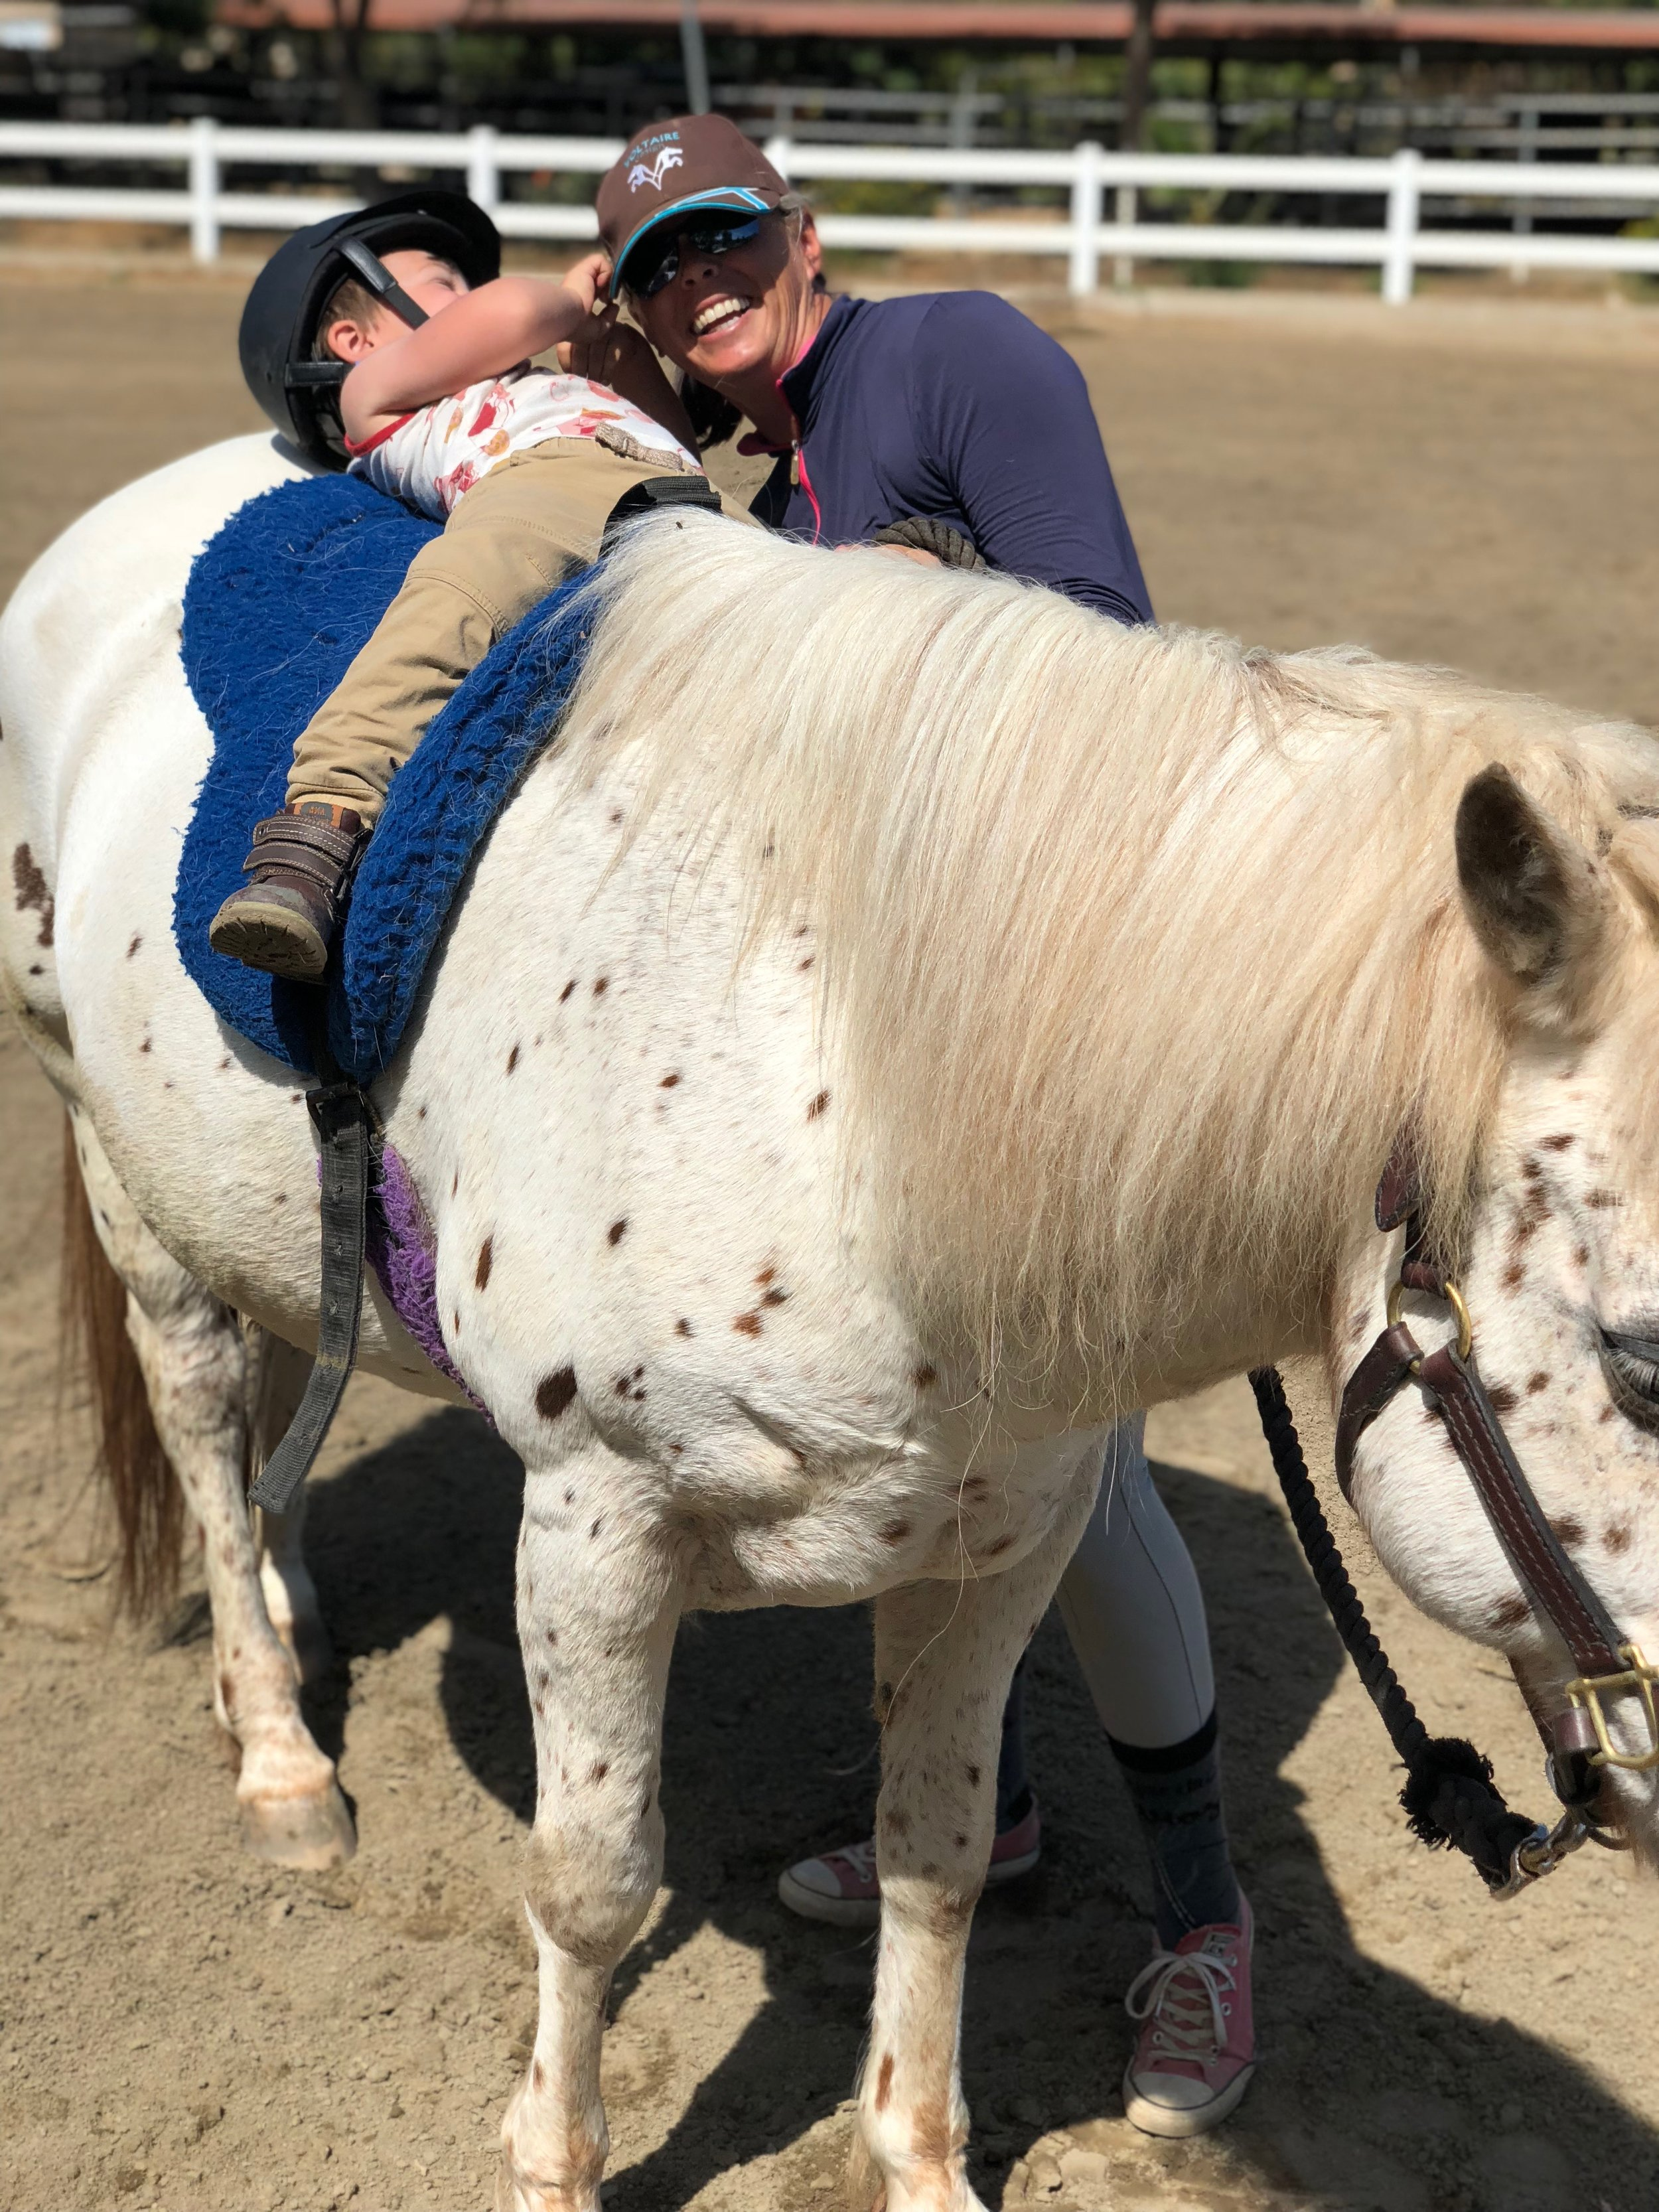 Congratulations to the Yount Family! - We are so happy that Charm has a wonderful family to start their new adventure in a new state. Love that this beautiful pony will have 2 perfect little boys to love her!